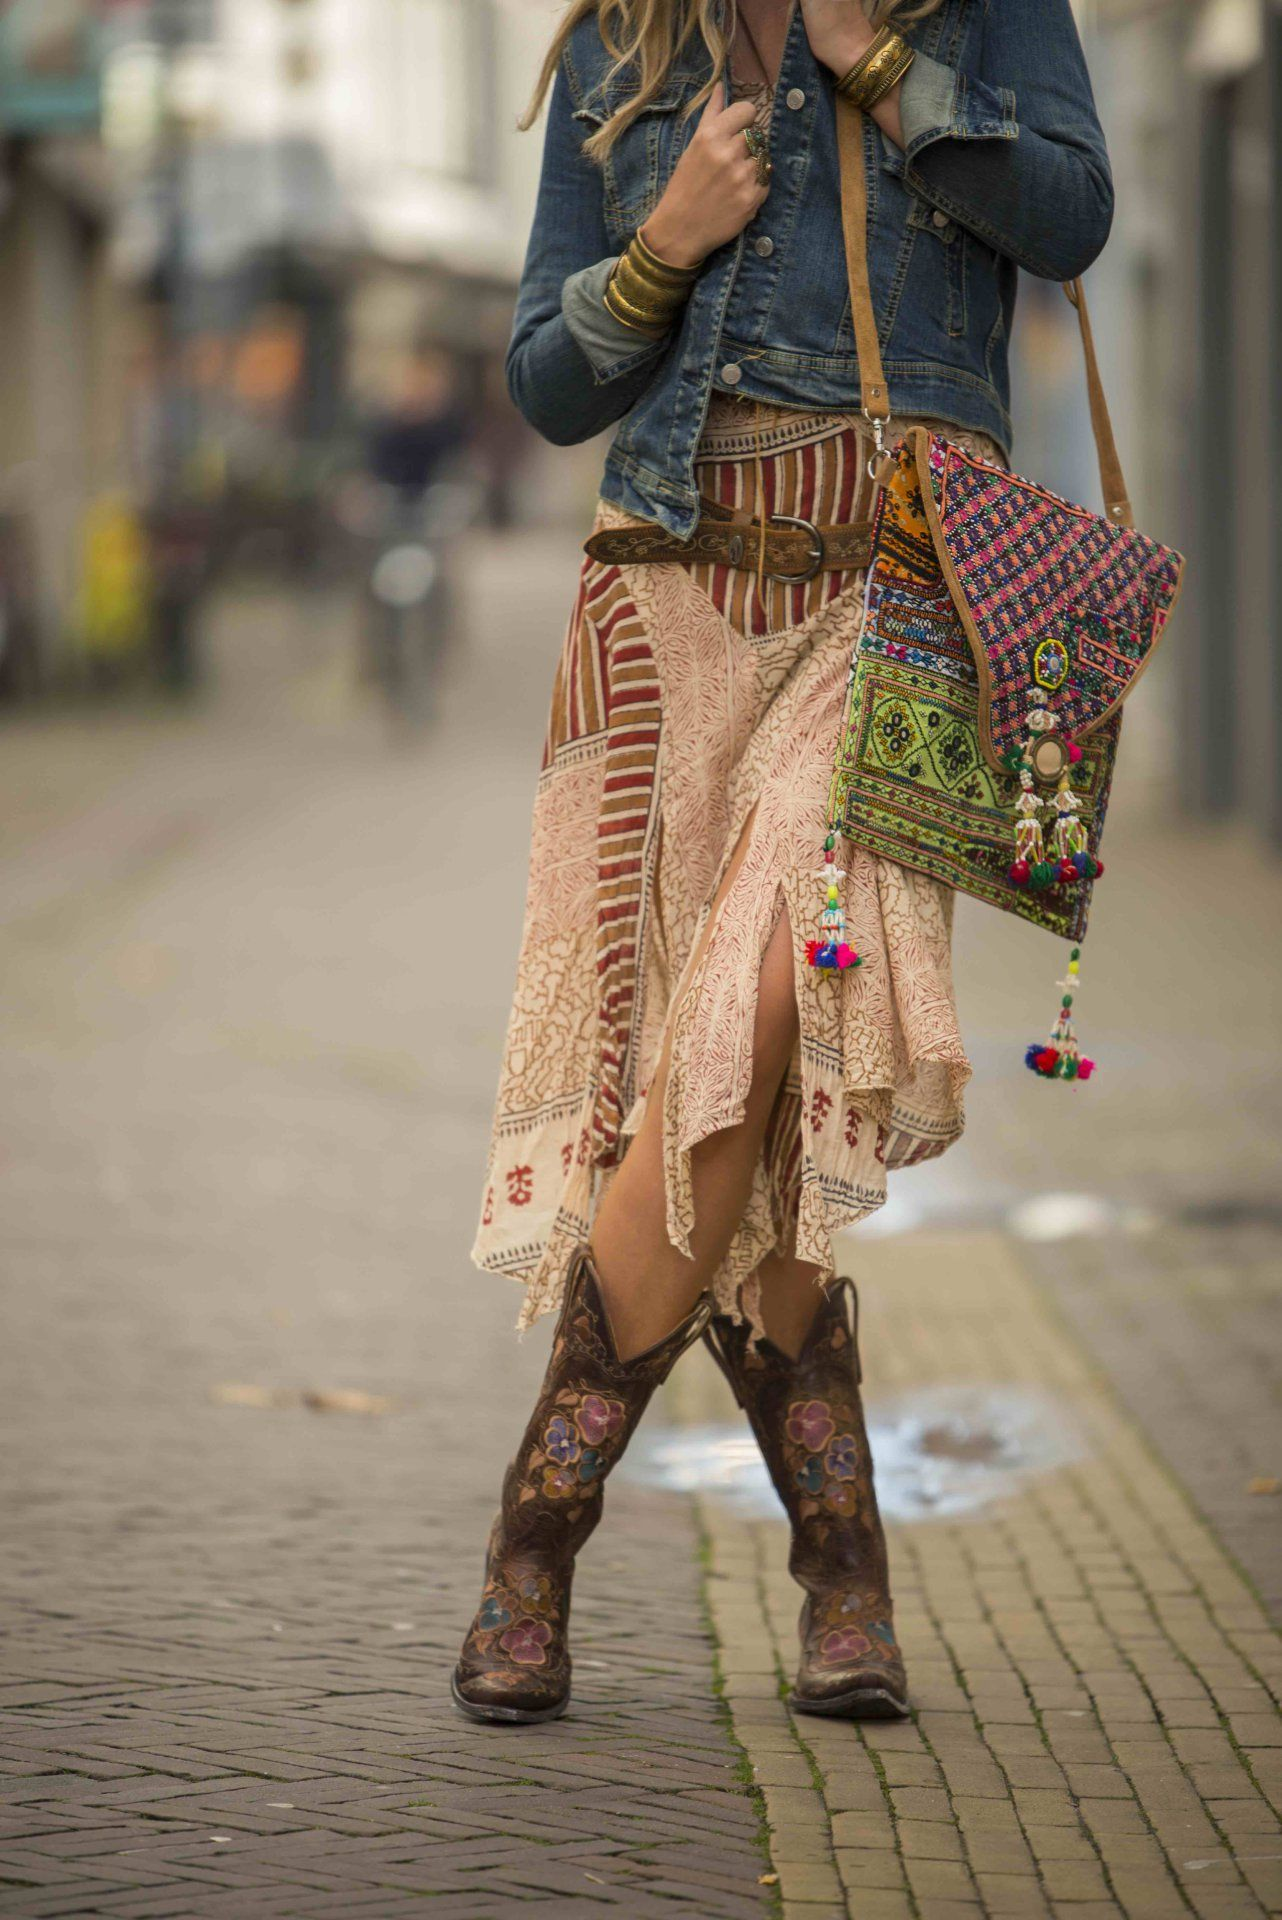 Hippie chic clothing - Stunning Indian inspired boho chic ...